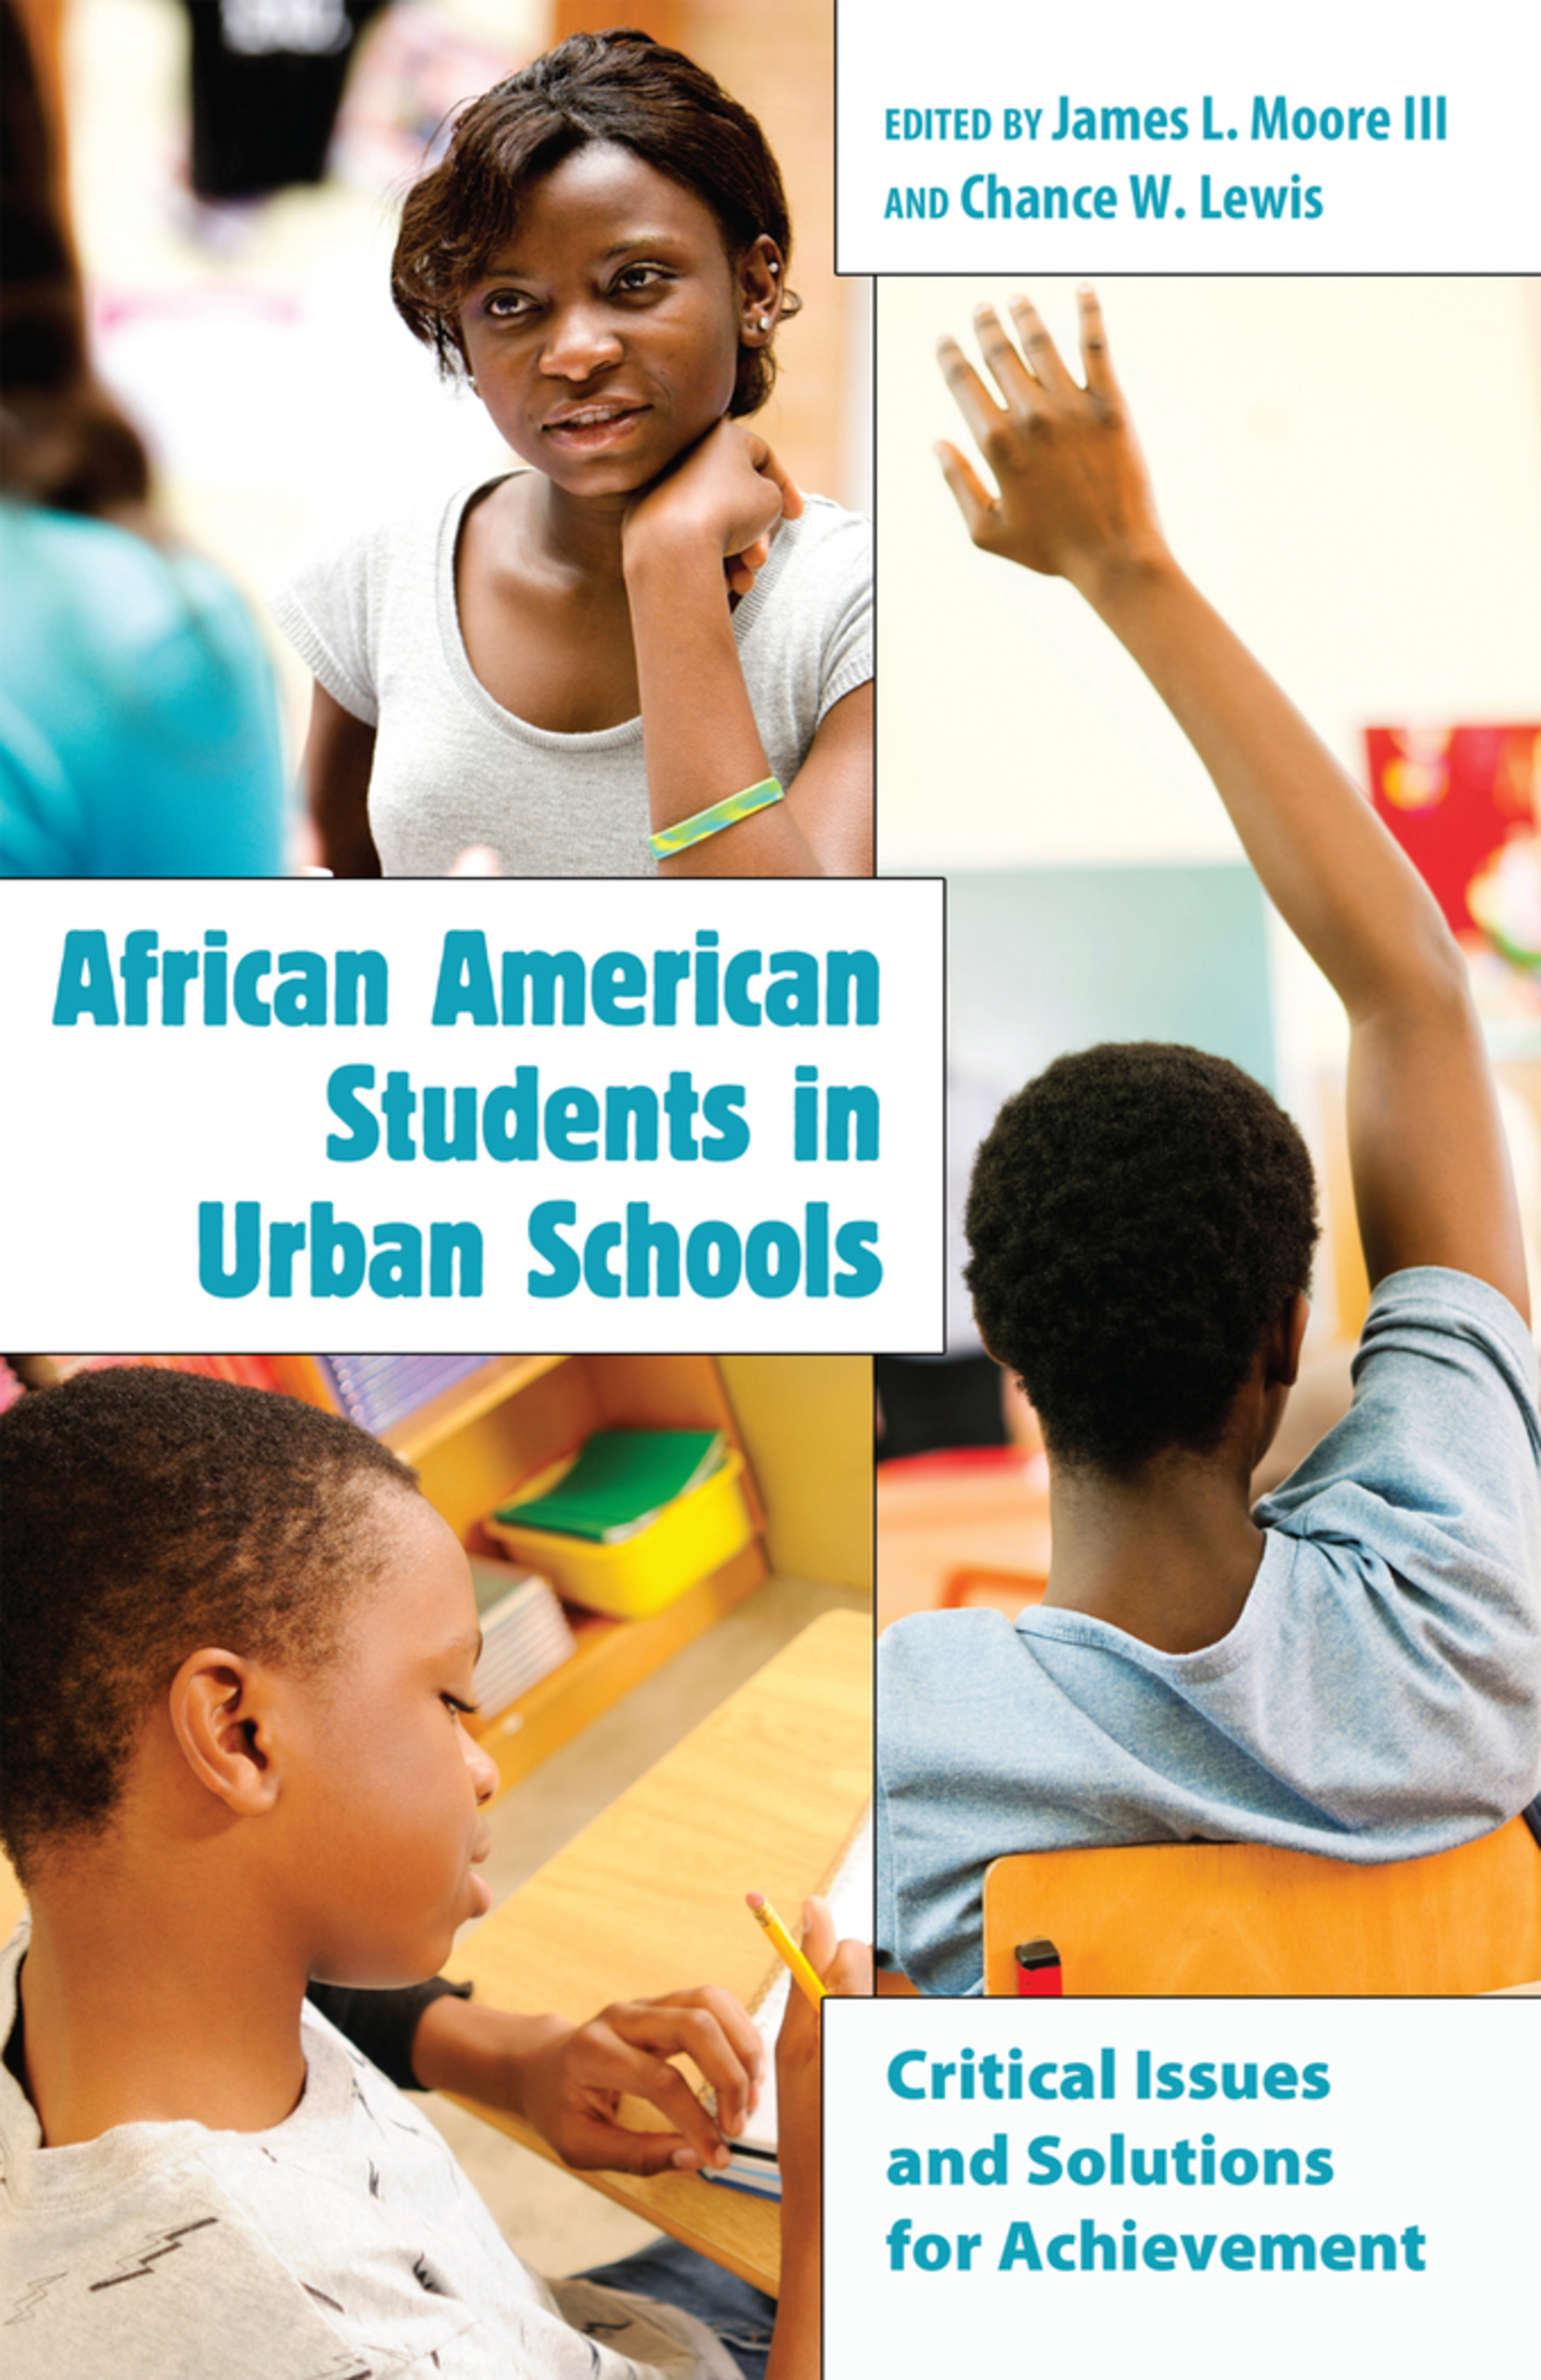 Title: African American Students in Urban Schools